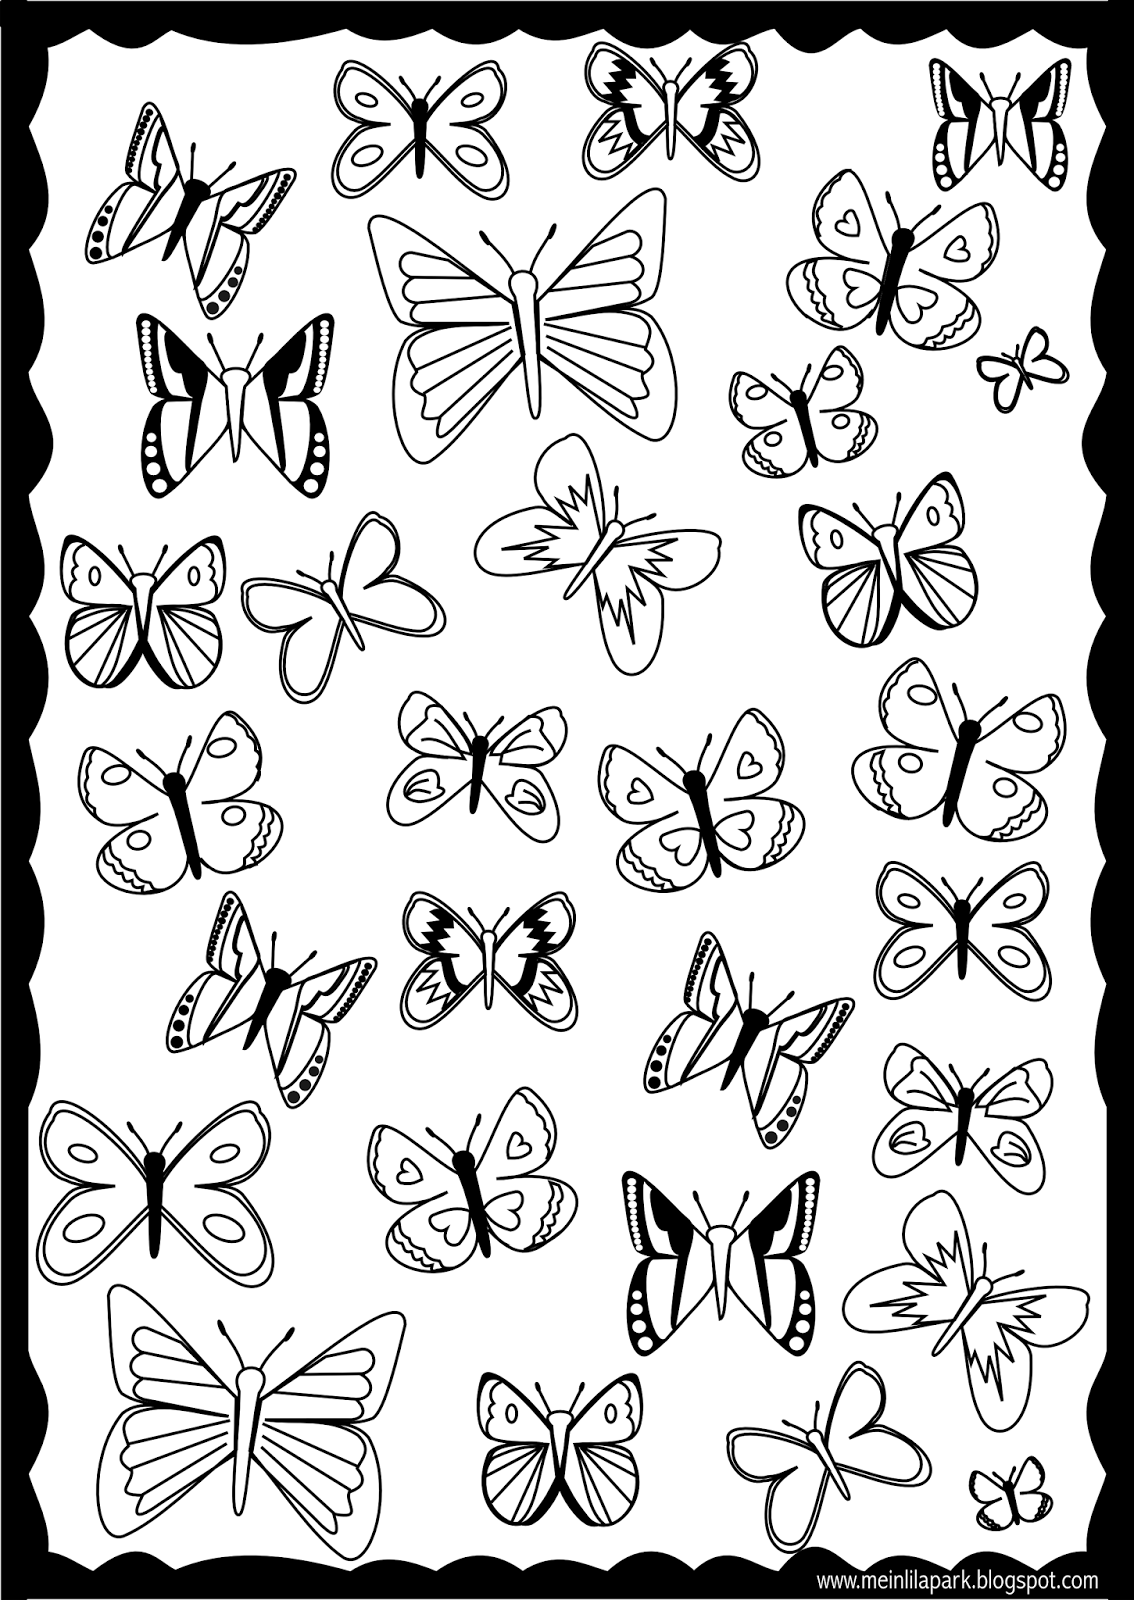 butterfly coloring sheets free printable butterfly coloring page ausdruckbare coloring butterfly sheets